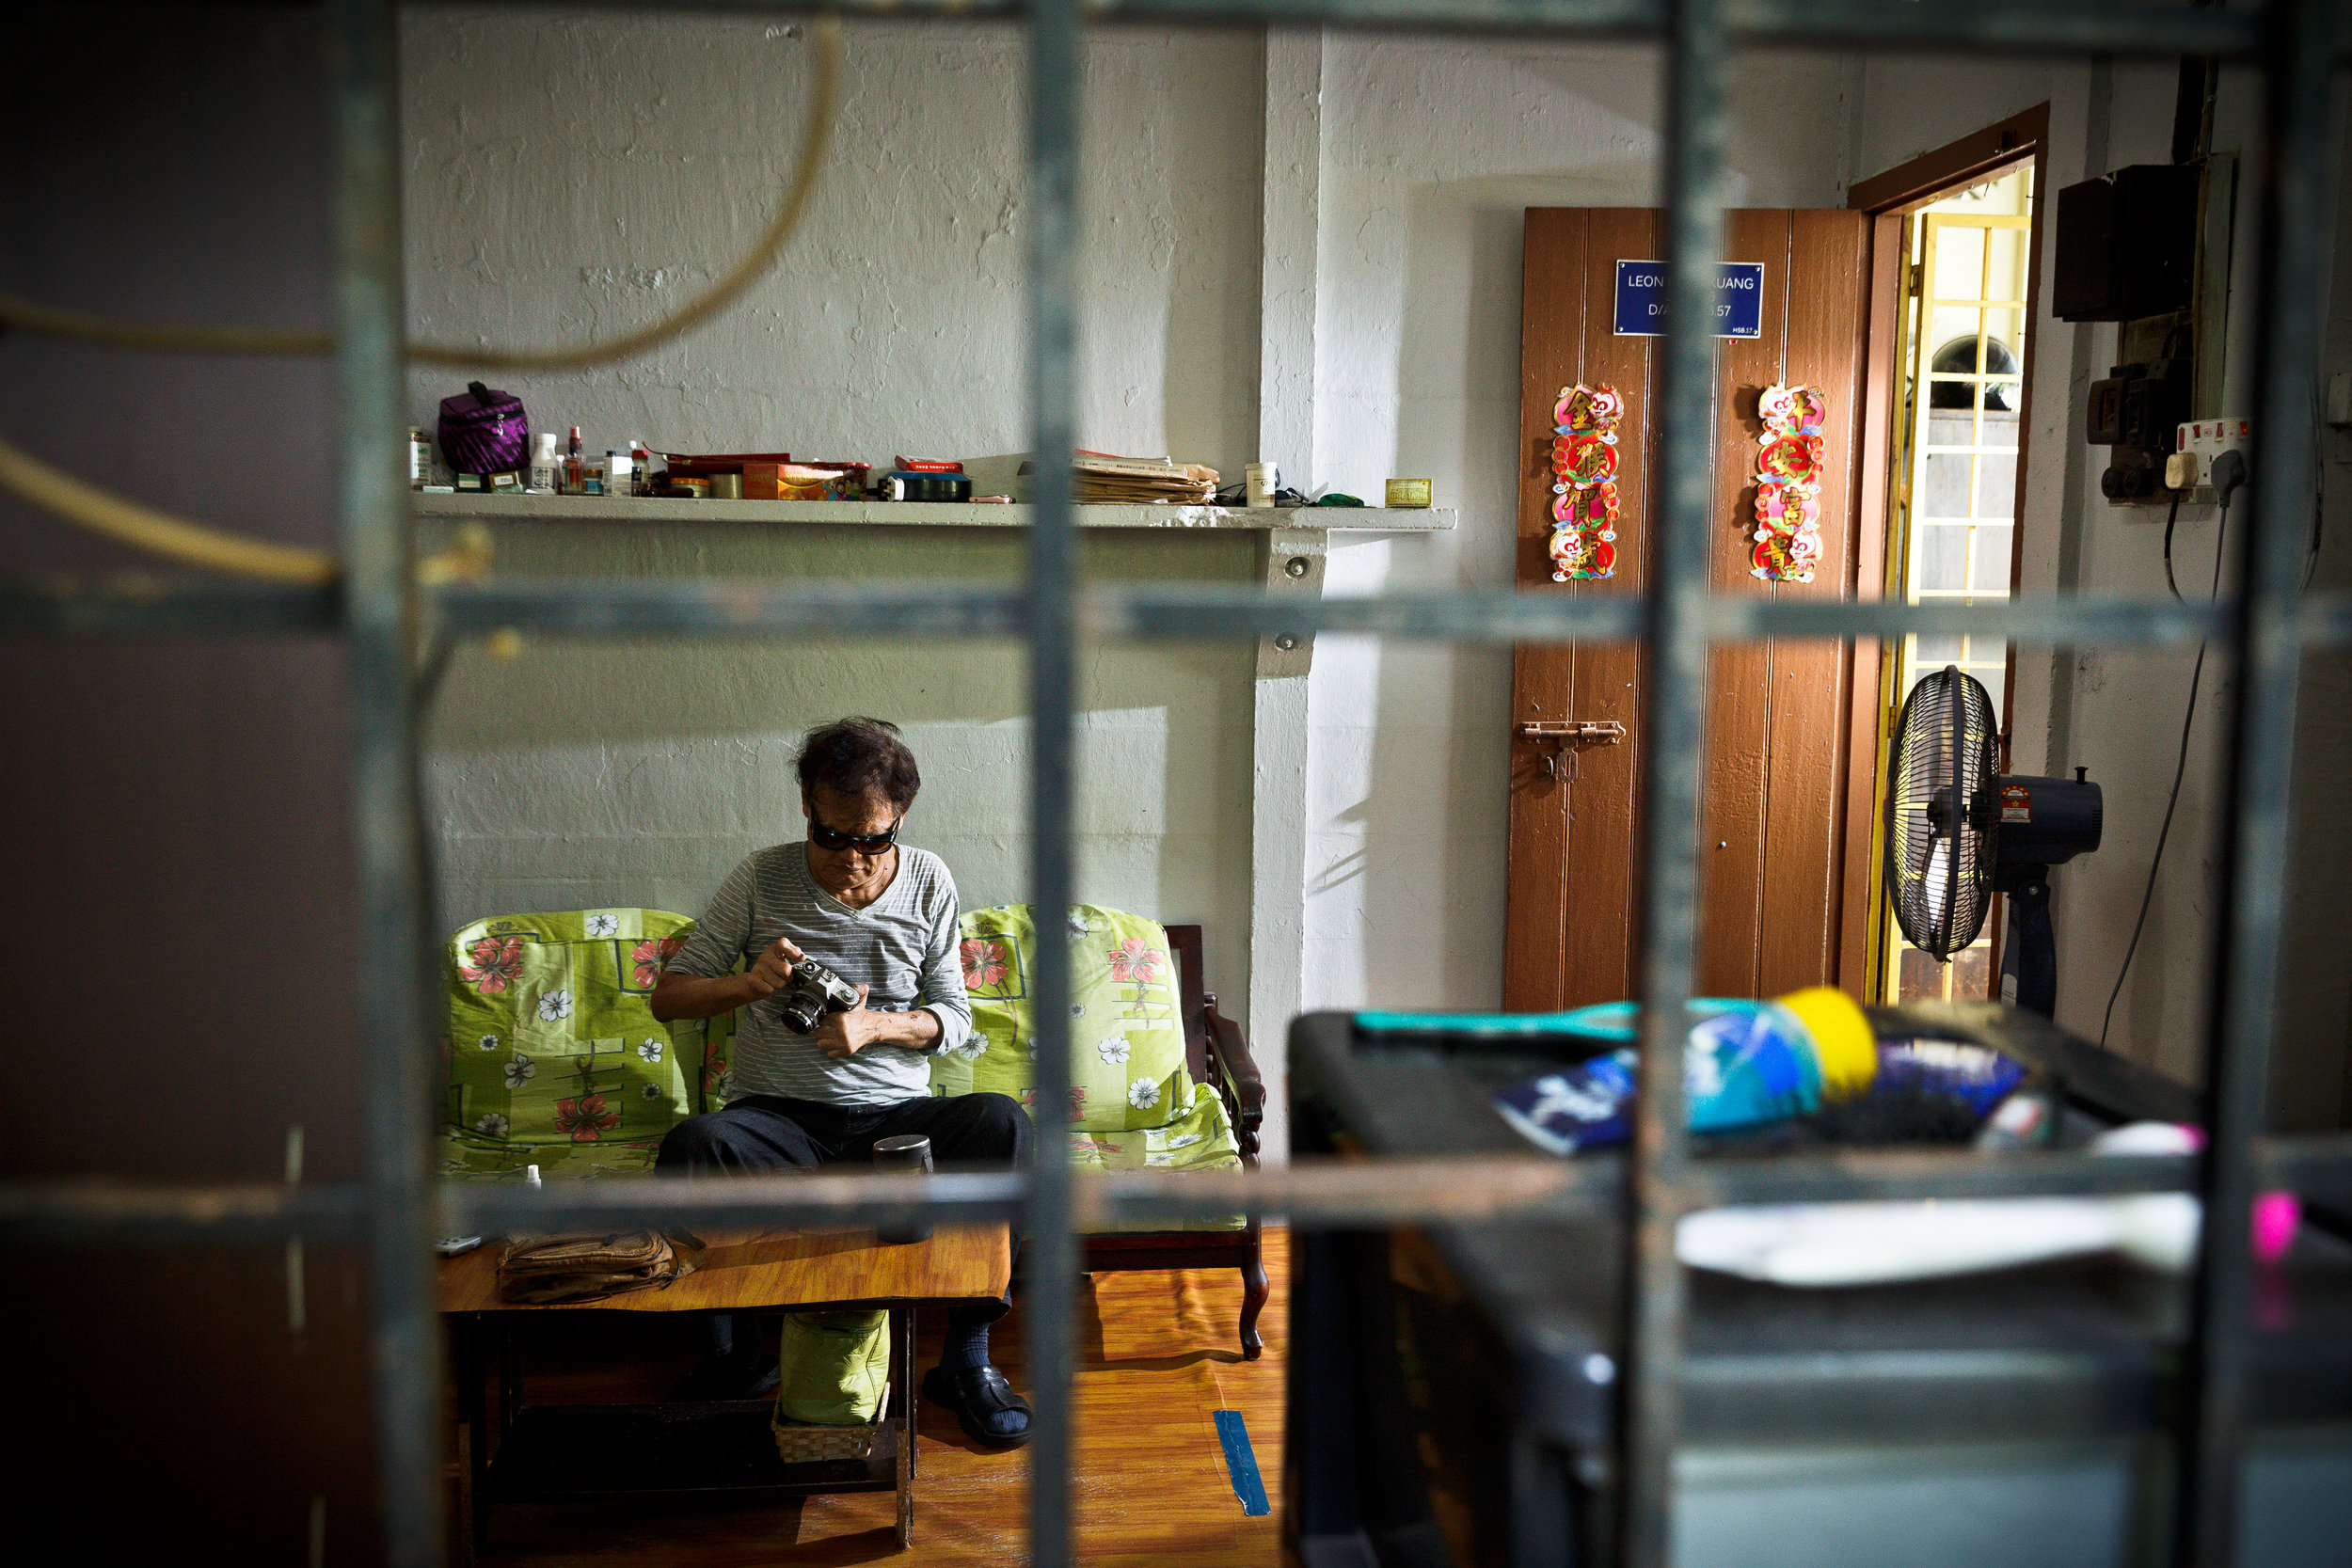 L eon Chee Kuang in his chalet at the Central Section. (photo by Mango Loke)